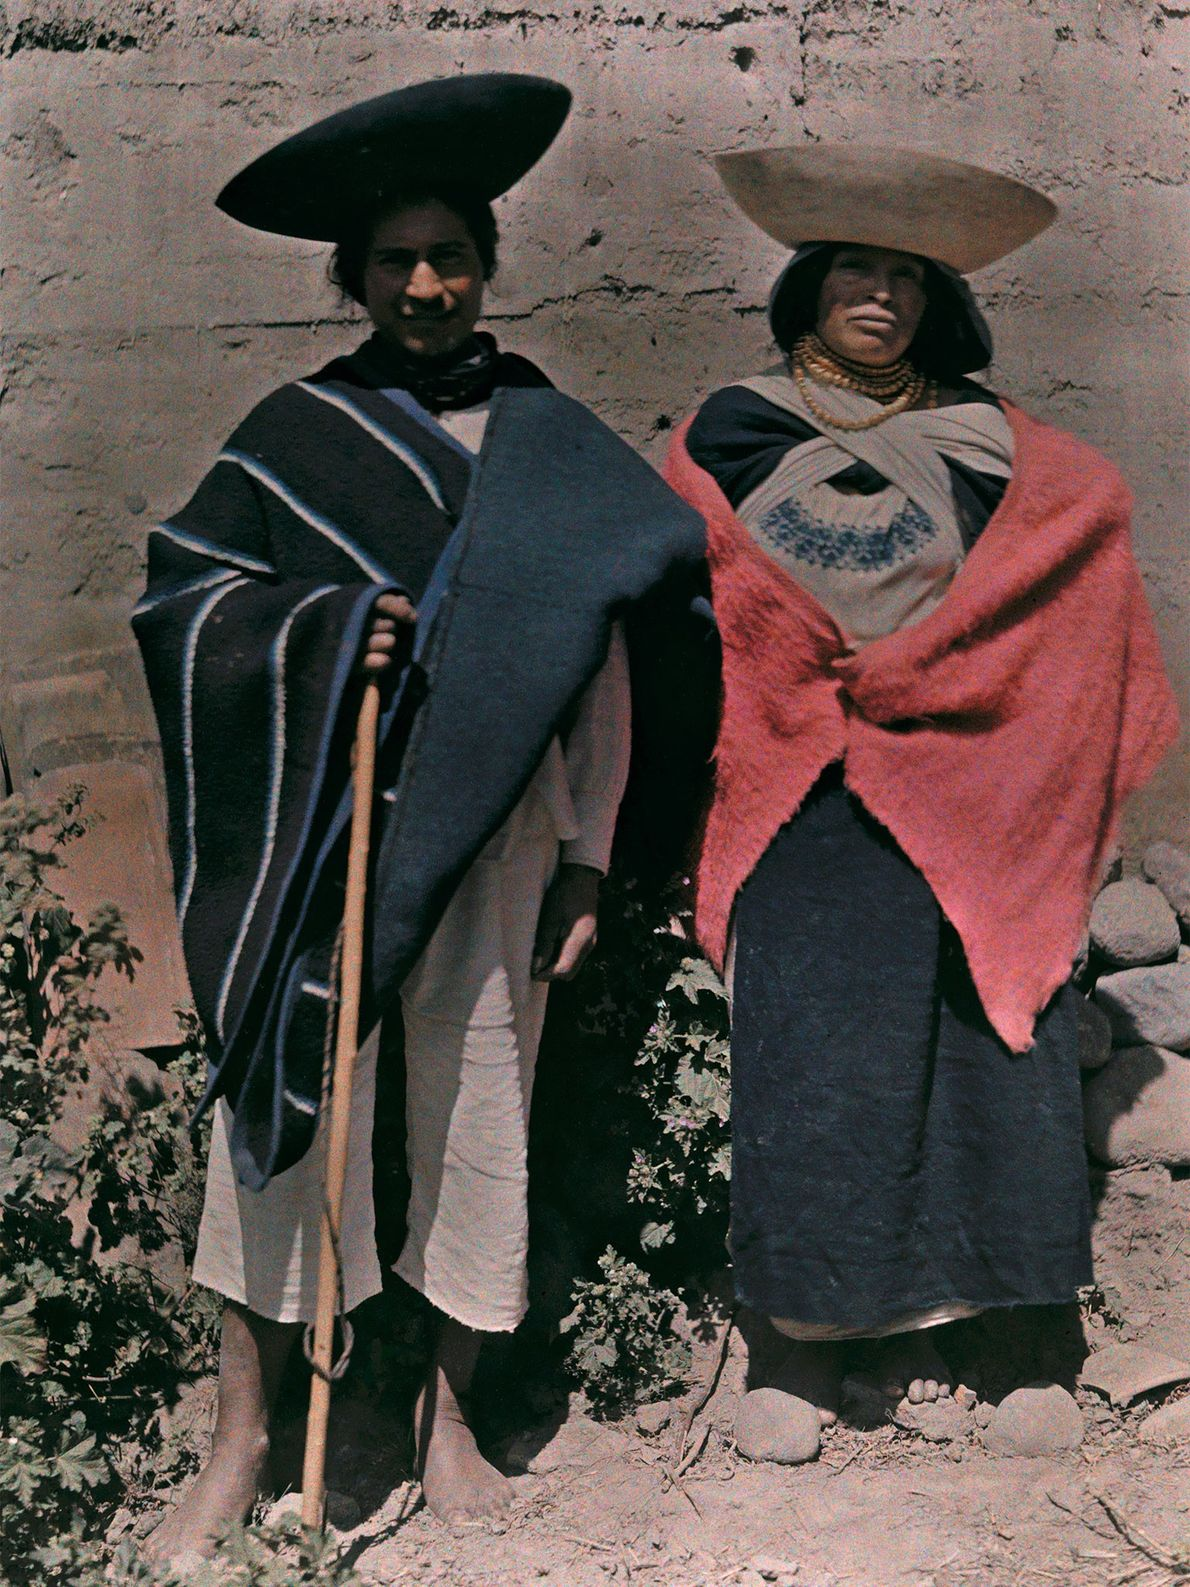 A man and woman from Otavalo, Ecuador, pose in bowl-shaped hats.